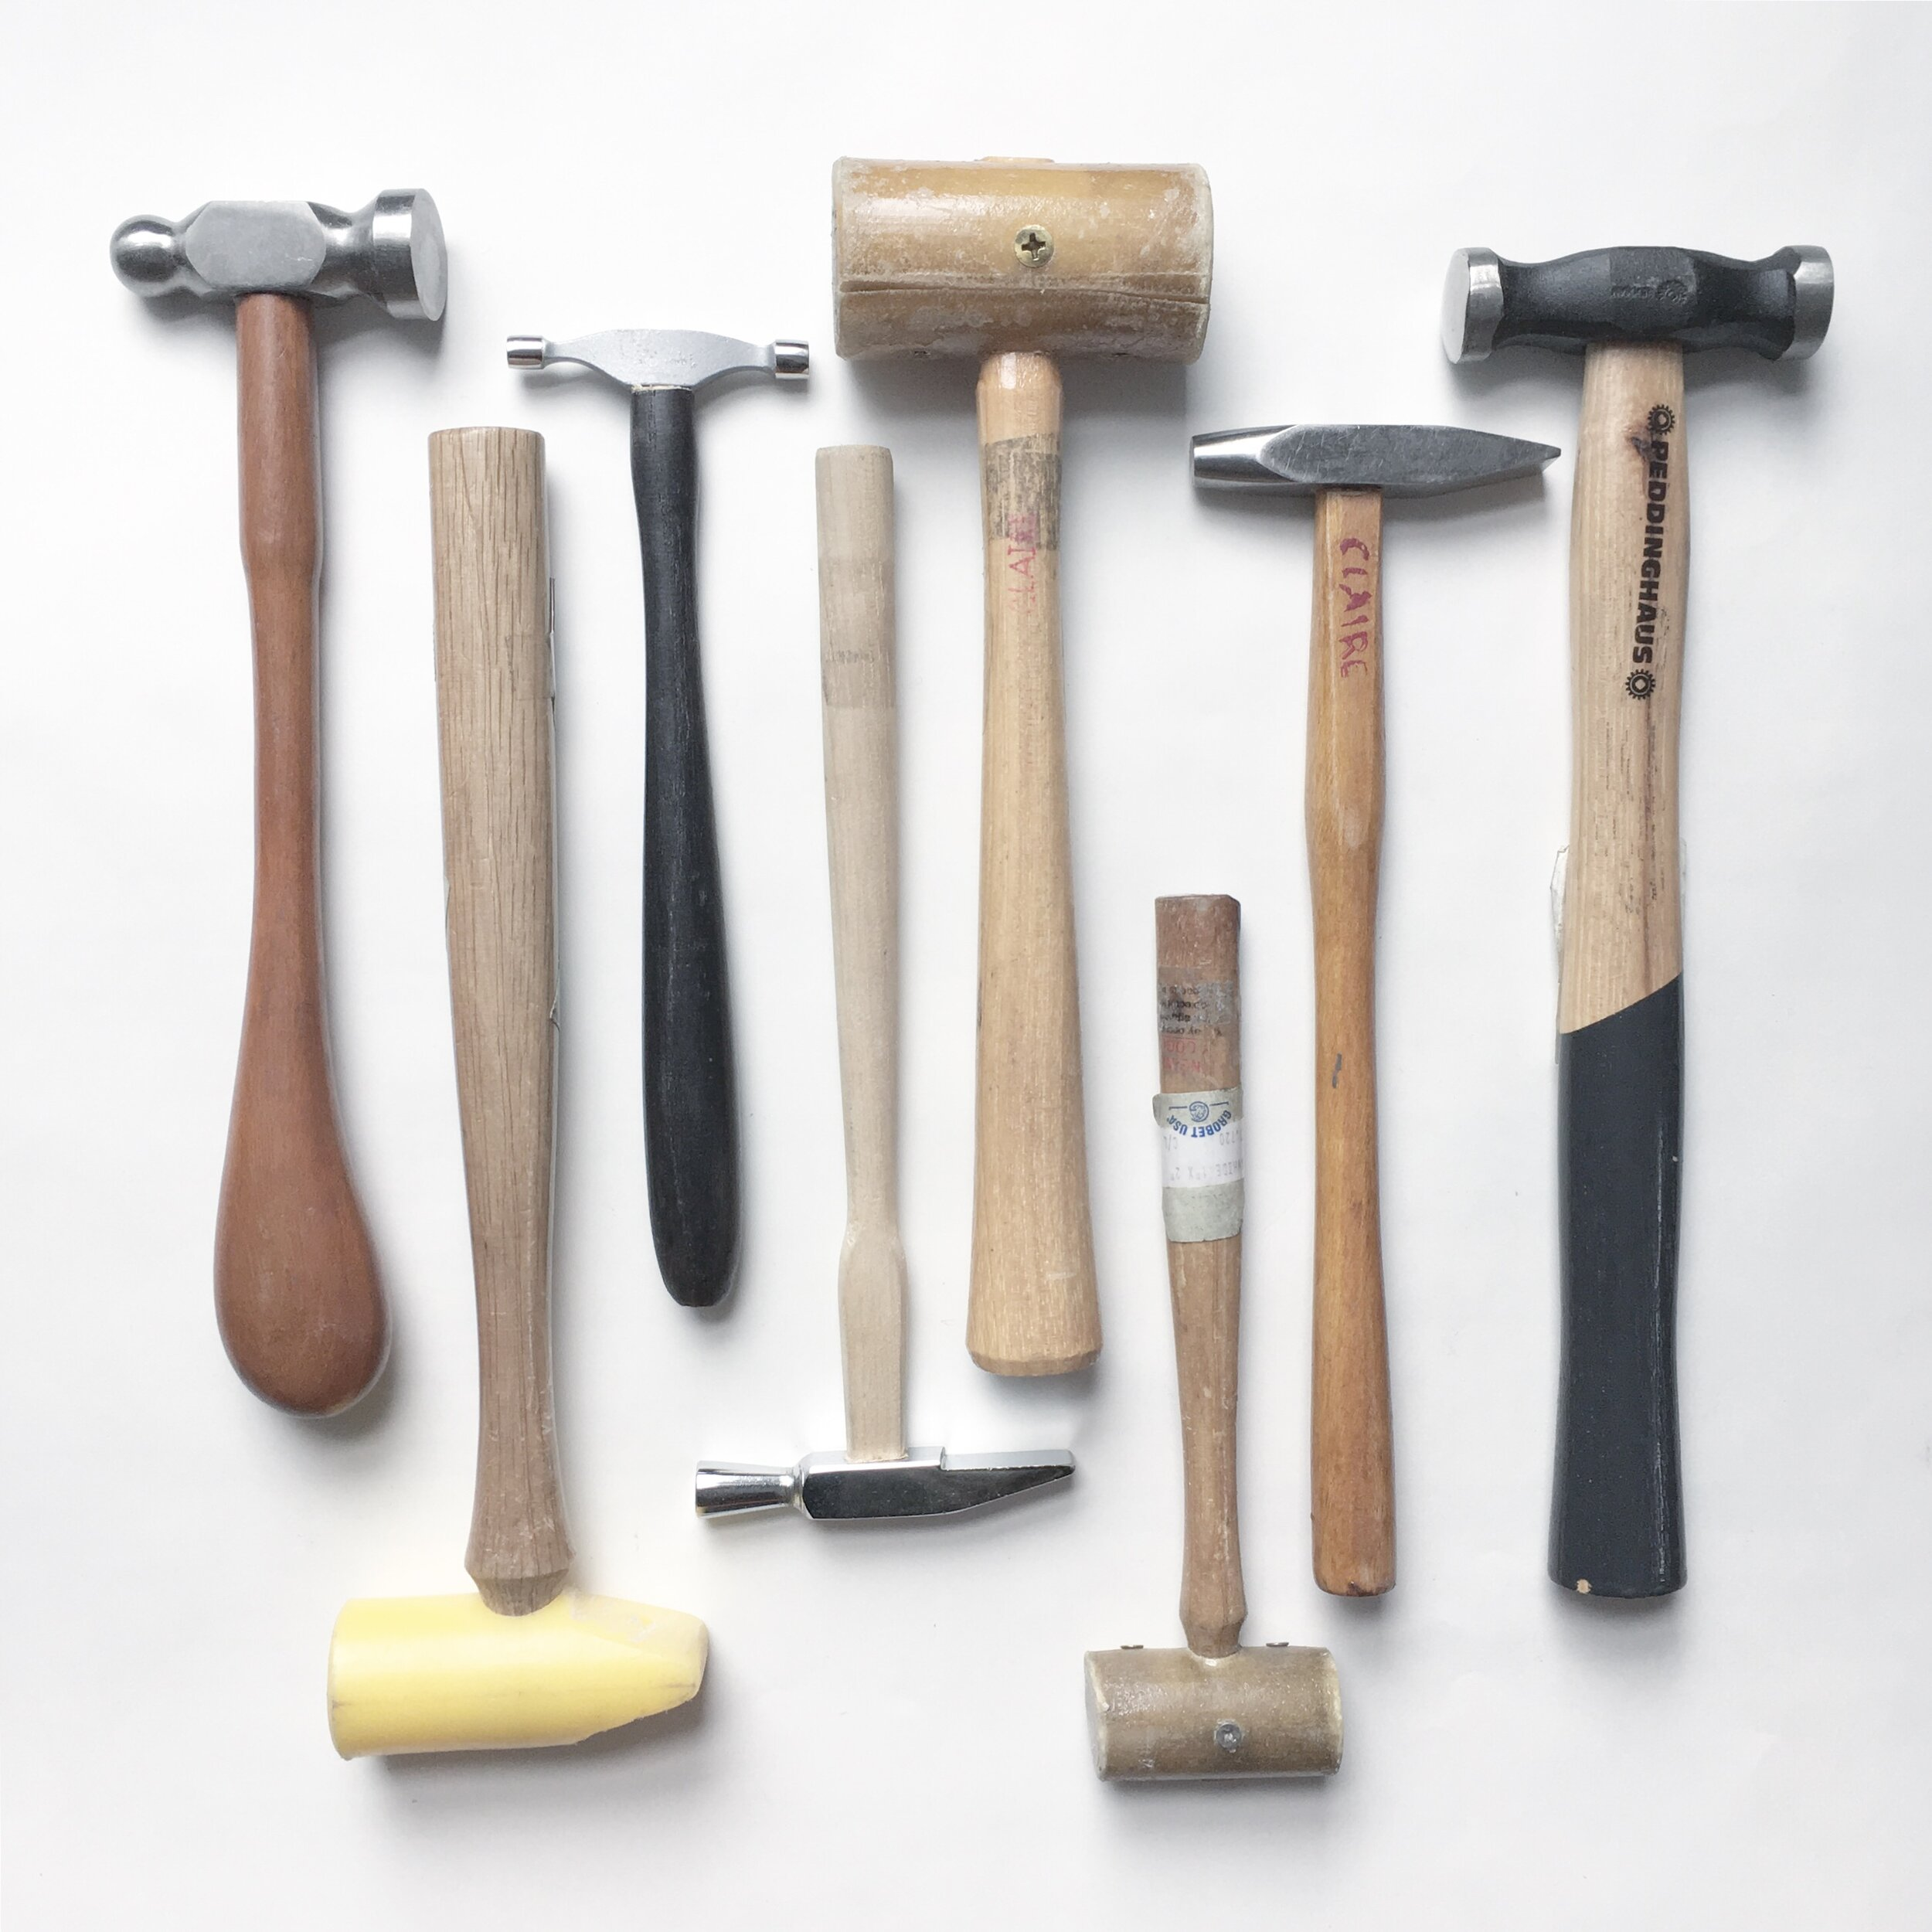 A variety of different hammers used to manipulate metal.